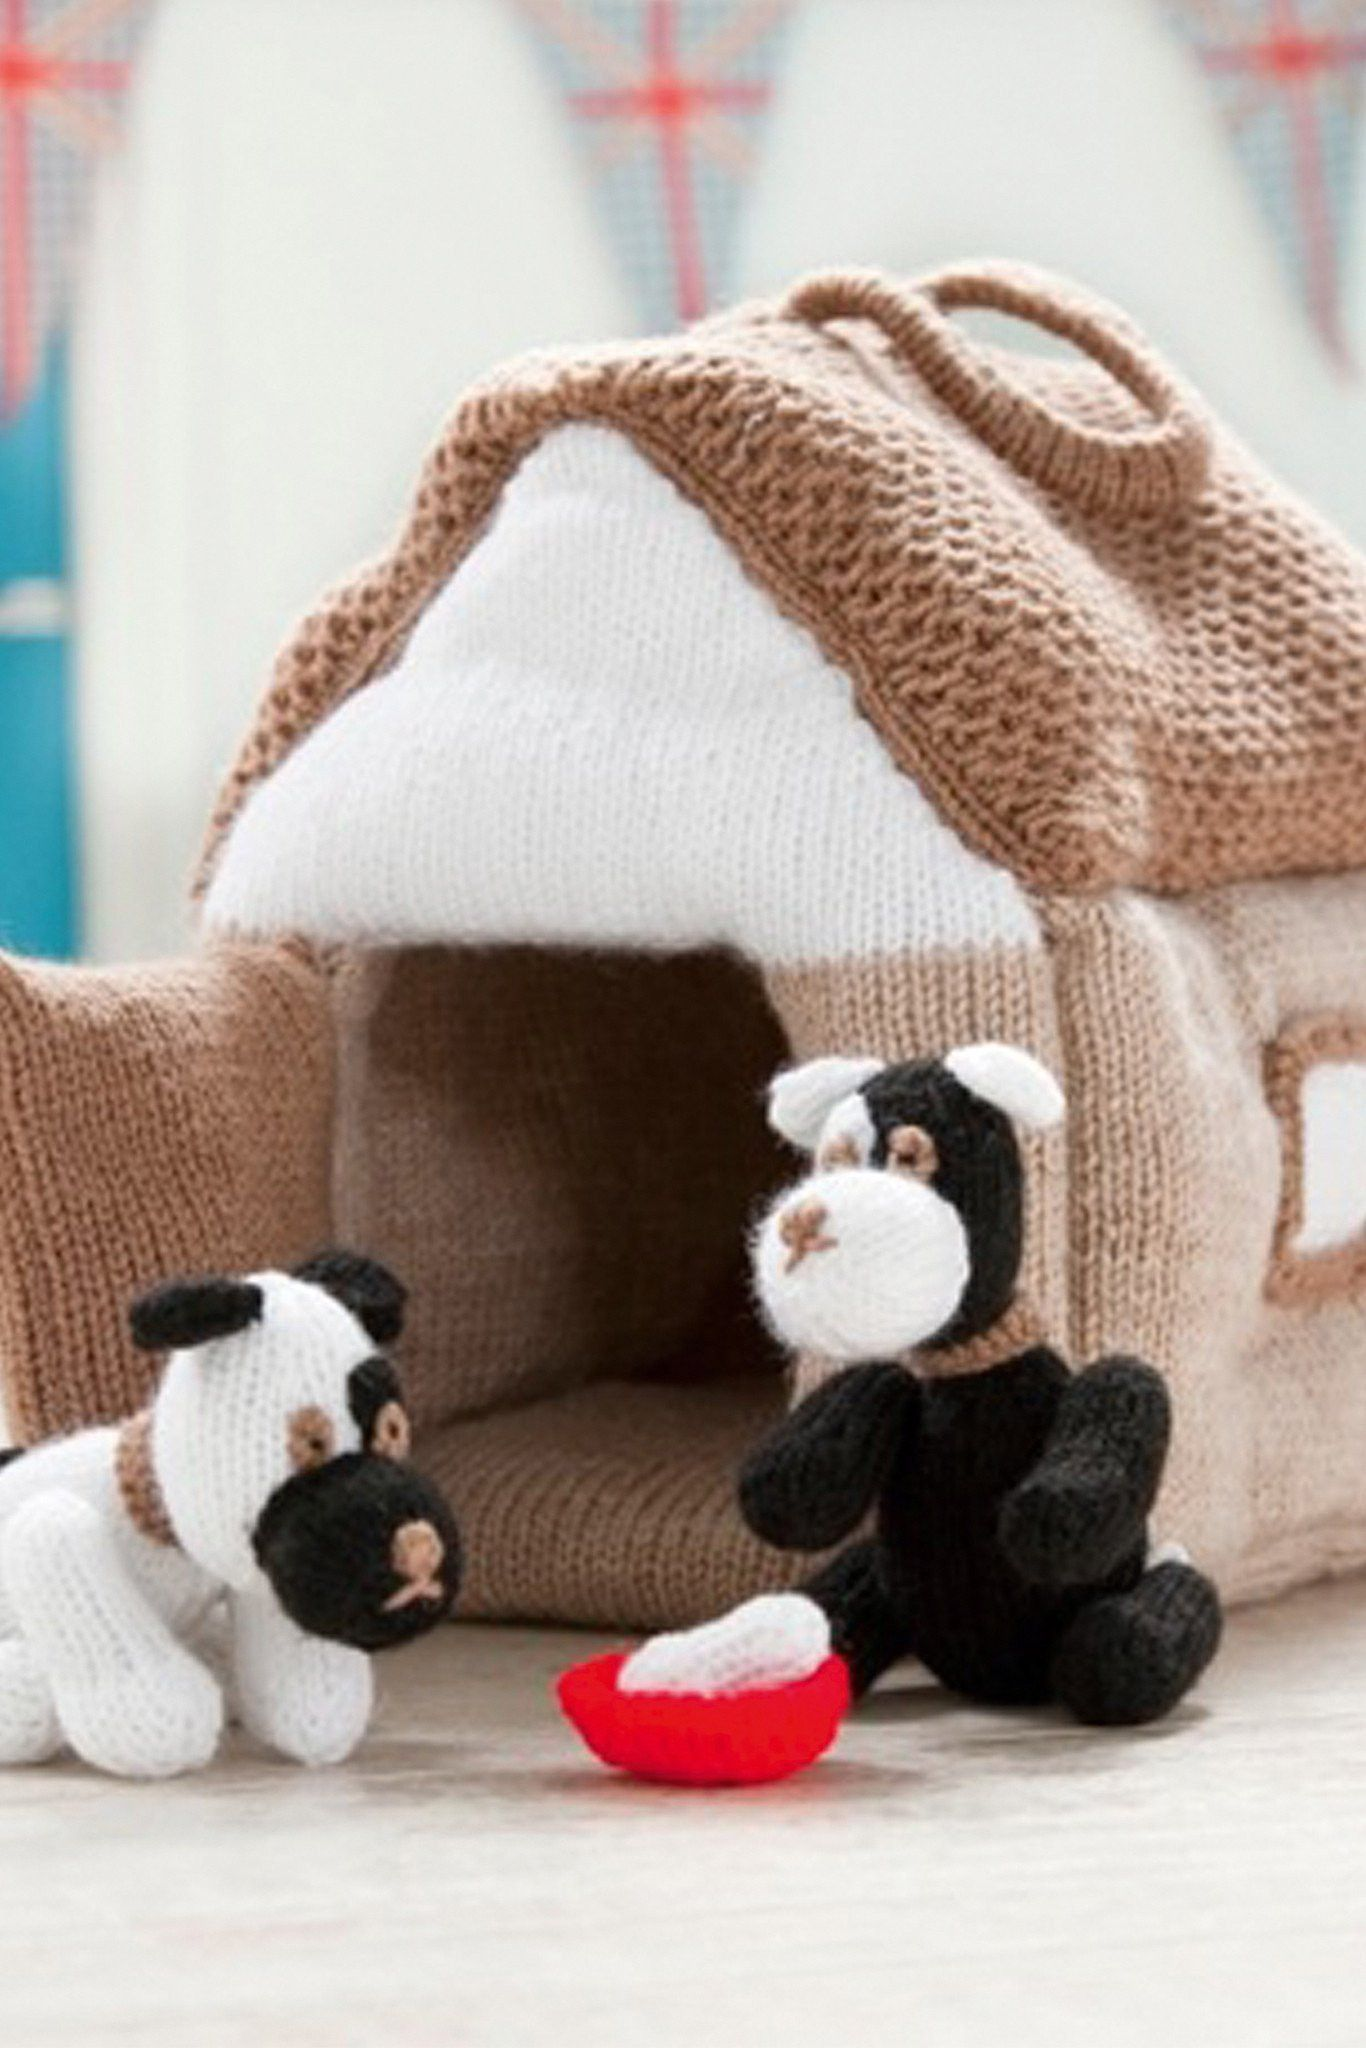 Puppy And Kennel Knitting Patterns | The Knitting Network